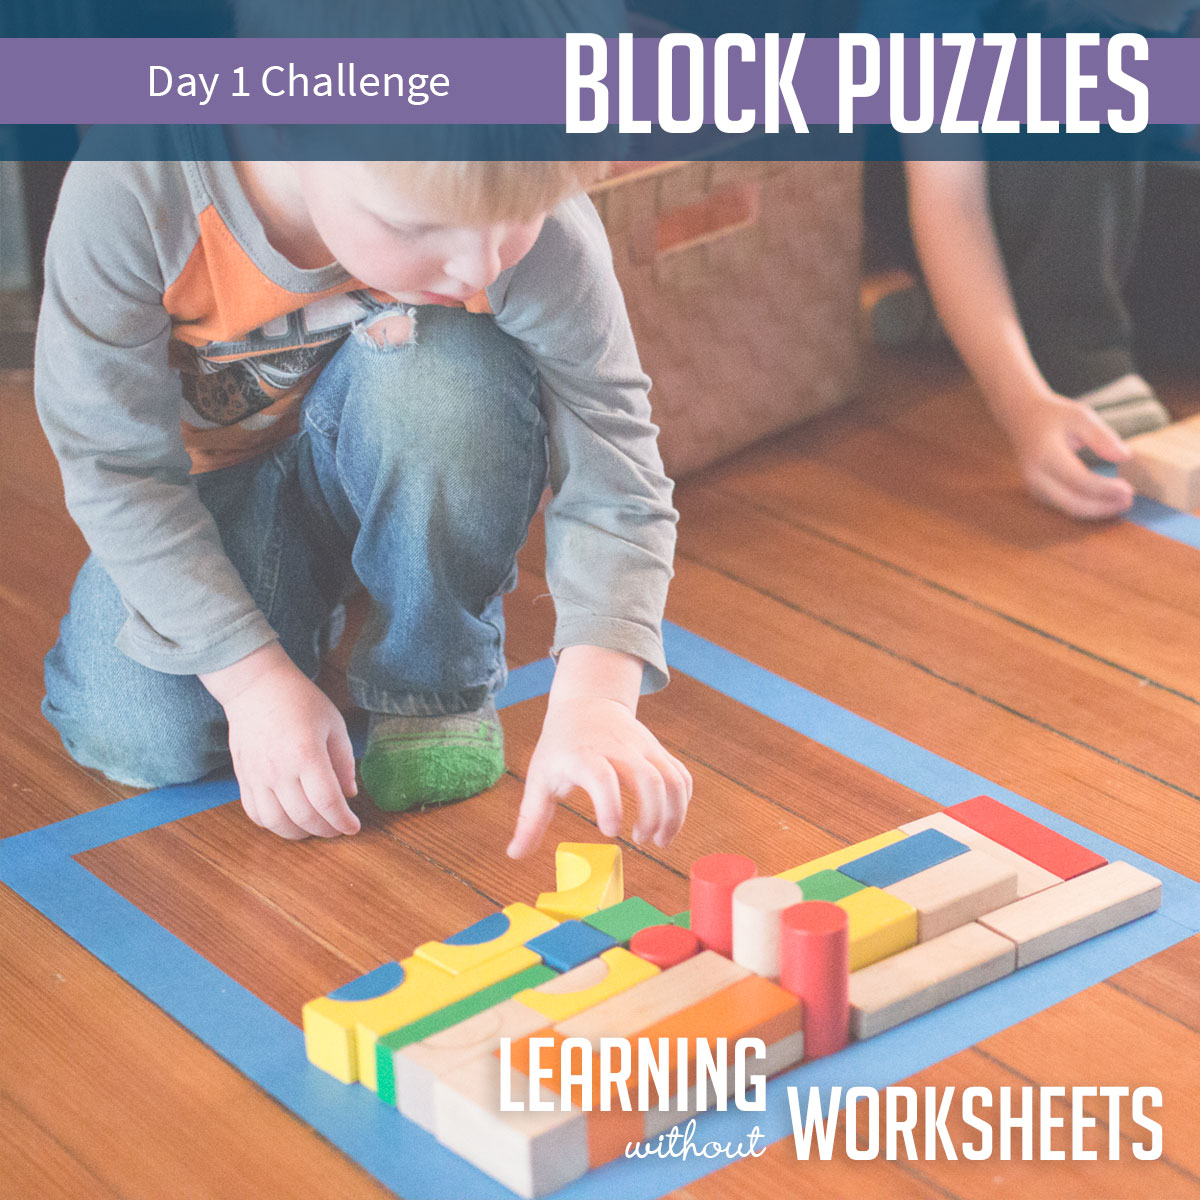 Learning Without Worksheets Challenge: Day 1!